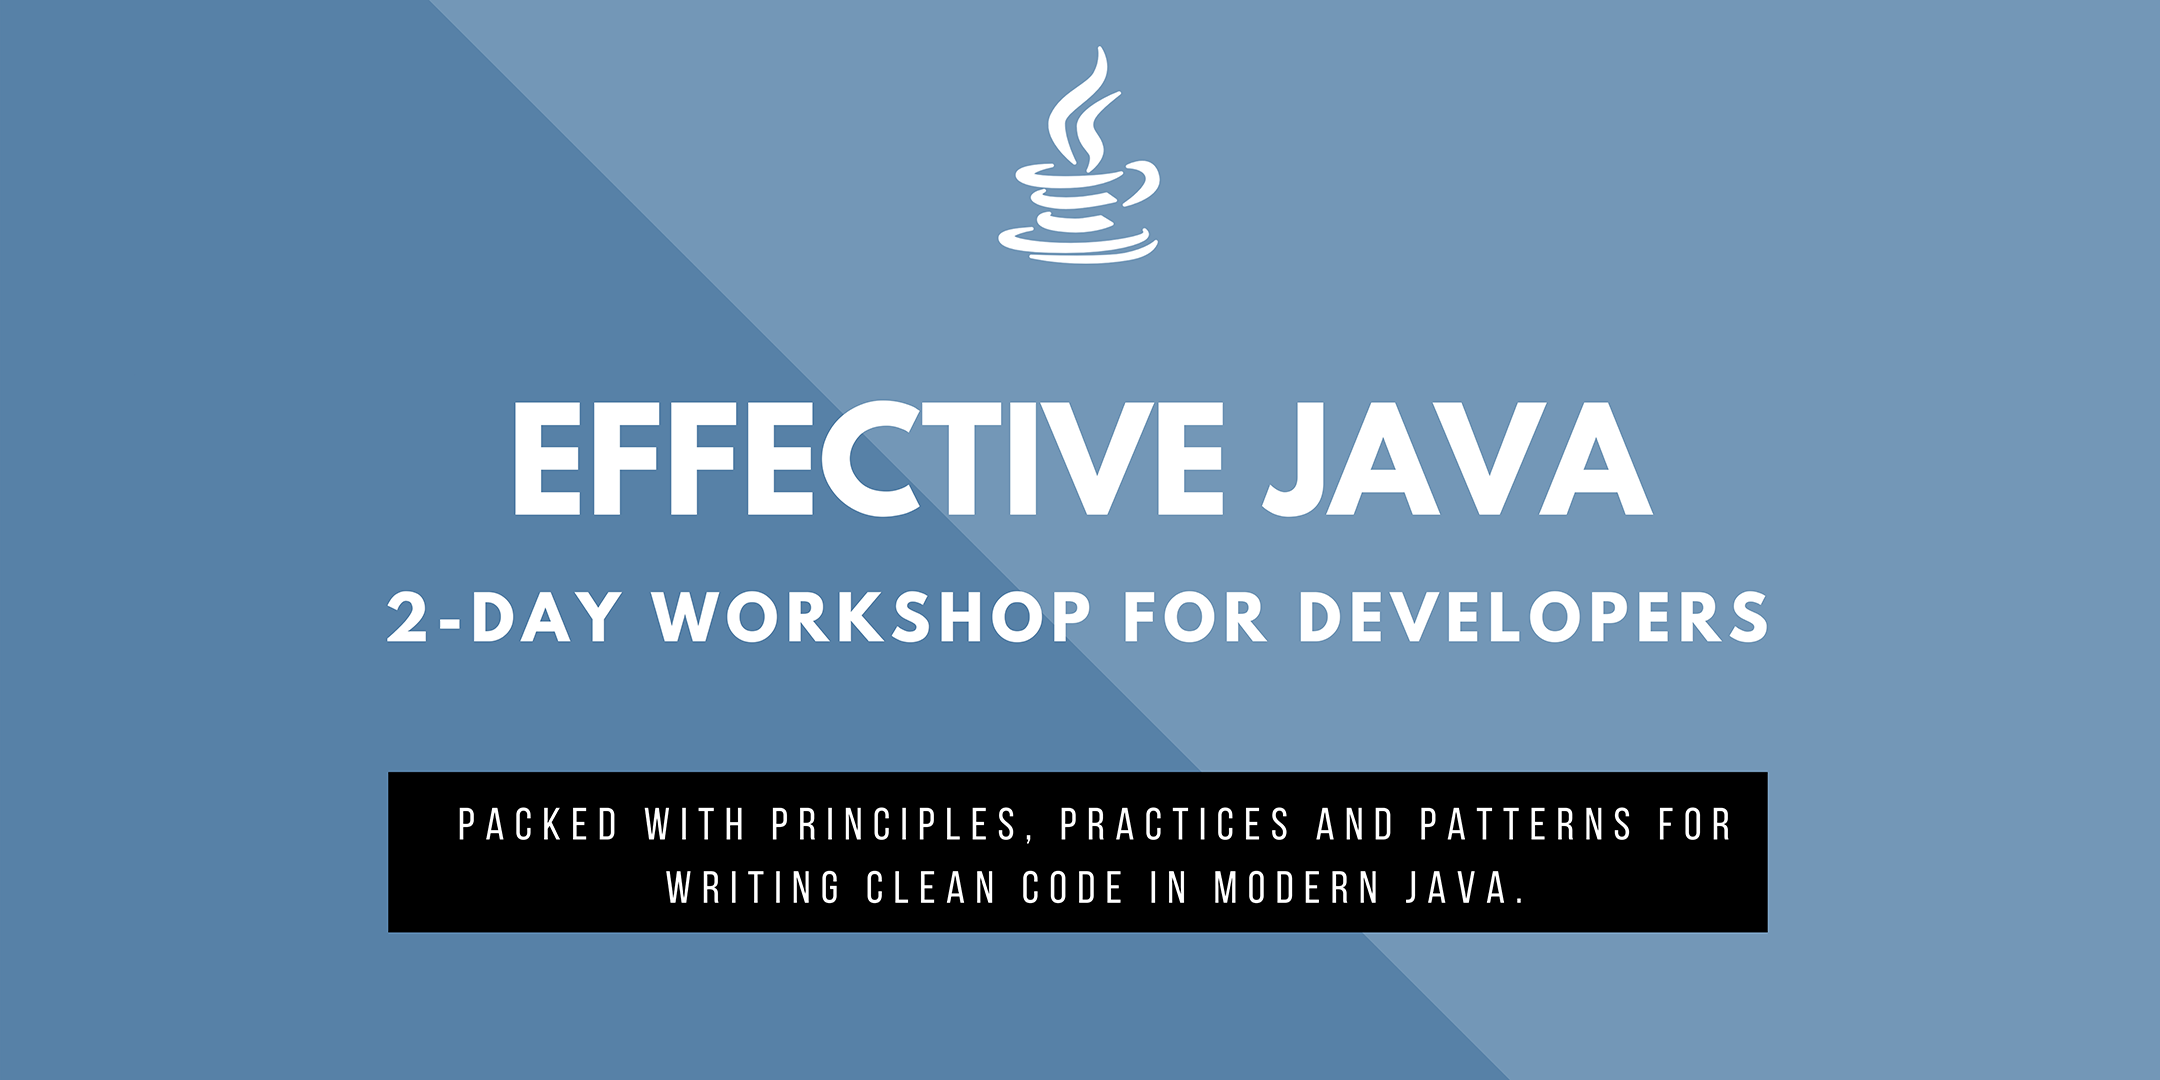 ❗TOP❗ Effective Java 10 for Developers (Dublin)